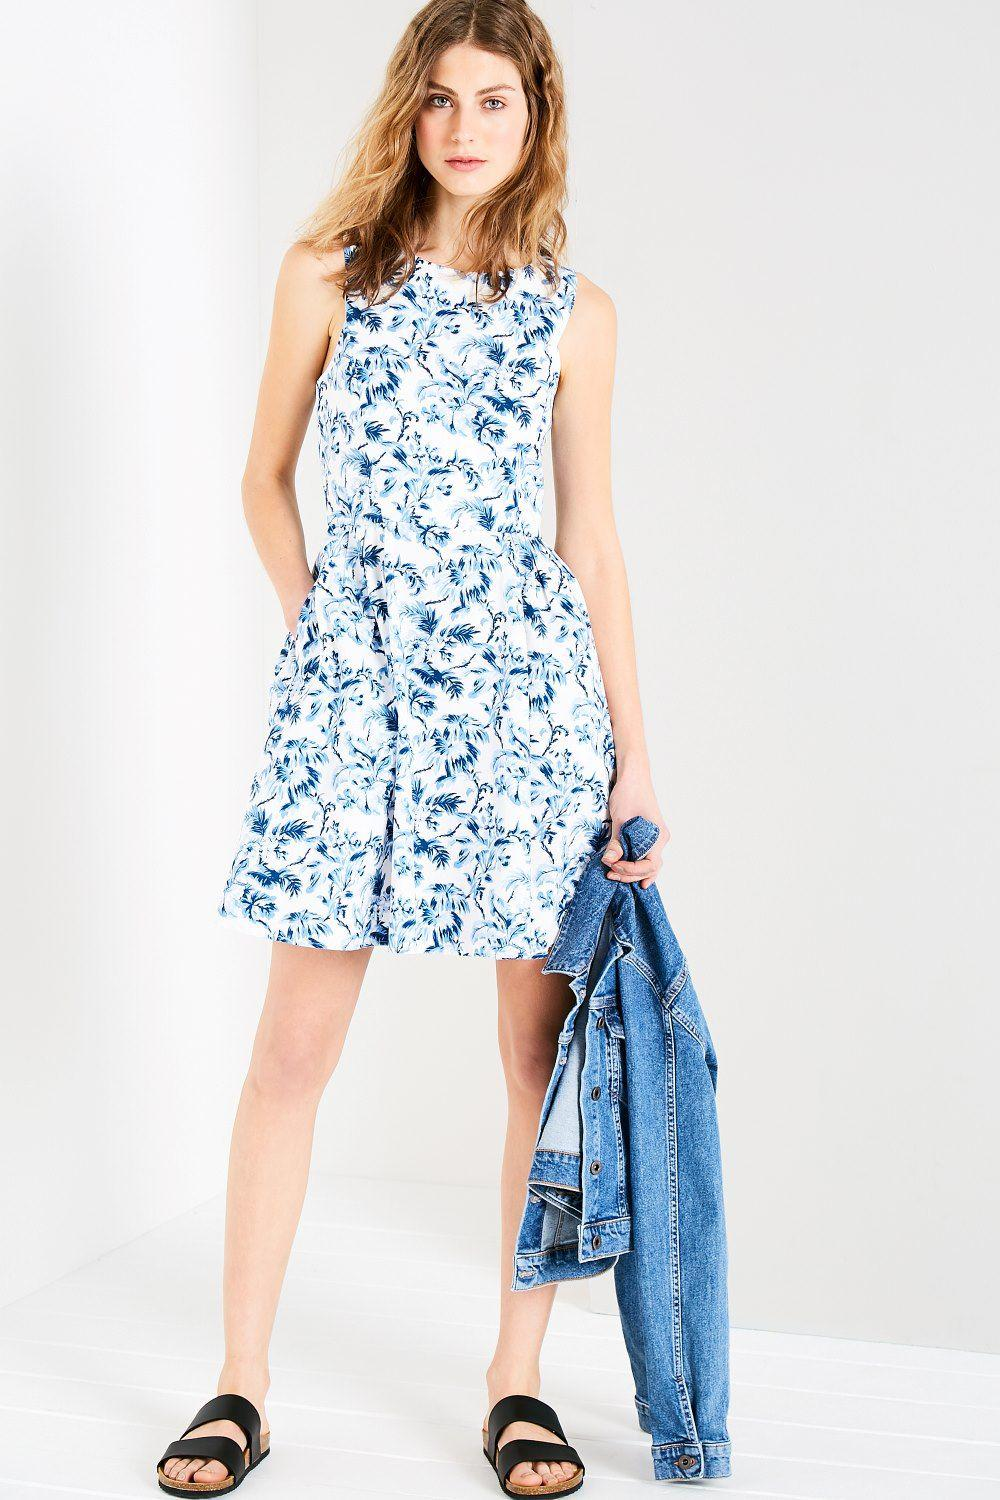 49f0aedfe48 Jack Wills Jasmin Floral Dress in White - Lyst